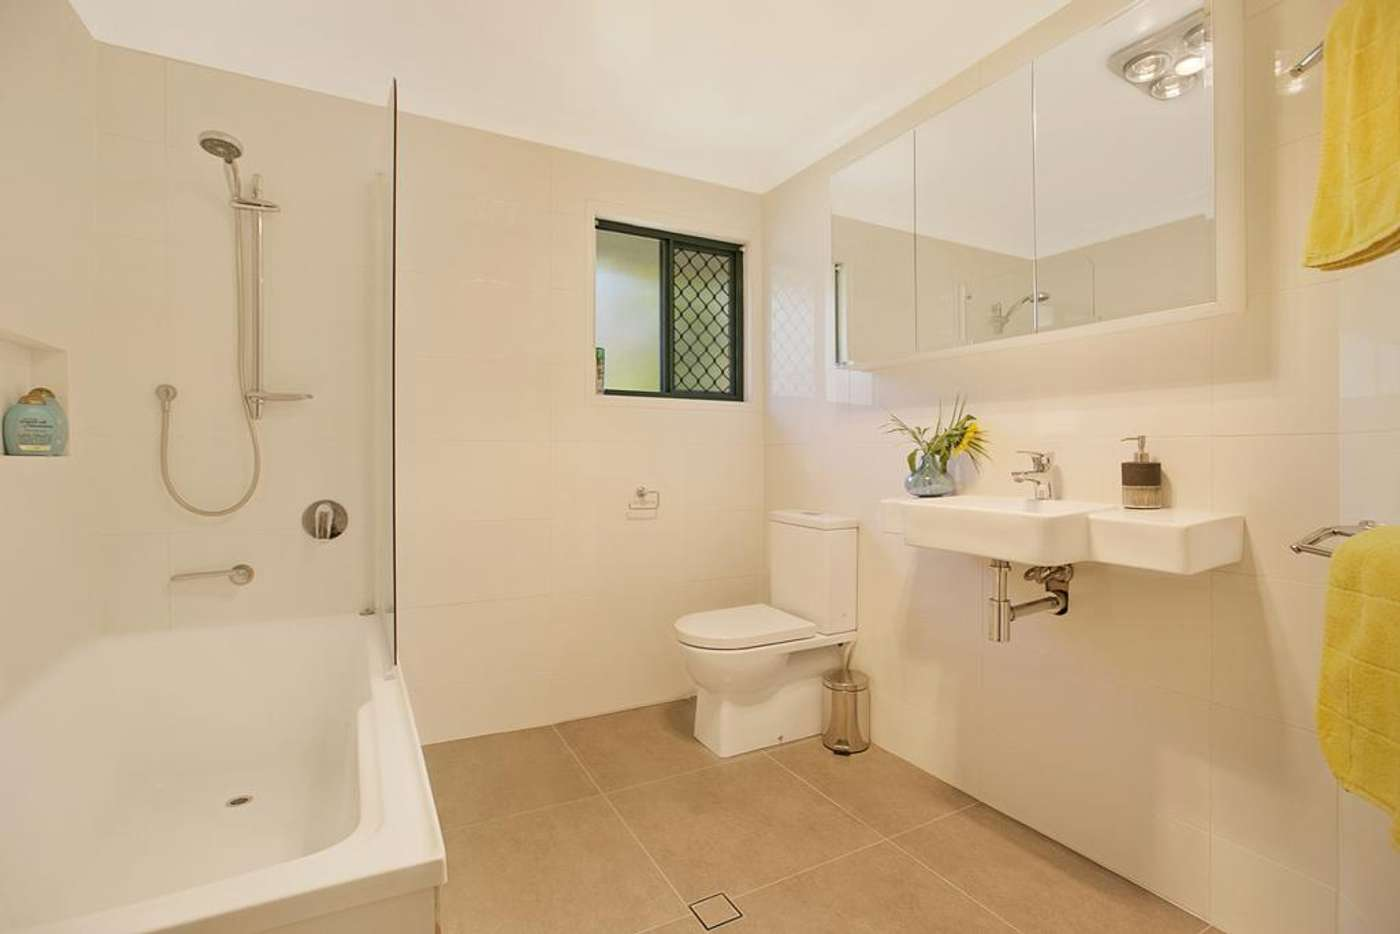 Seventh view of Homely townhouse listing, 12/20 Thurston Street, Tingalpa QLD 4173